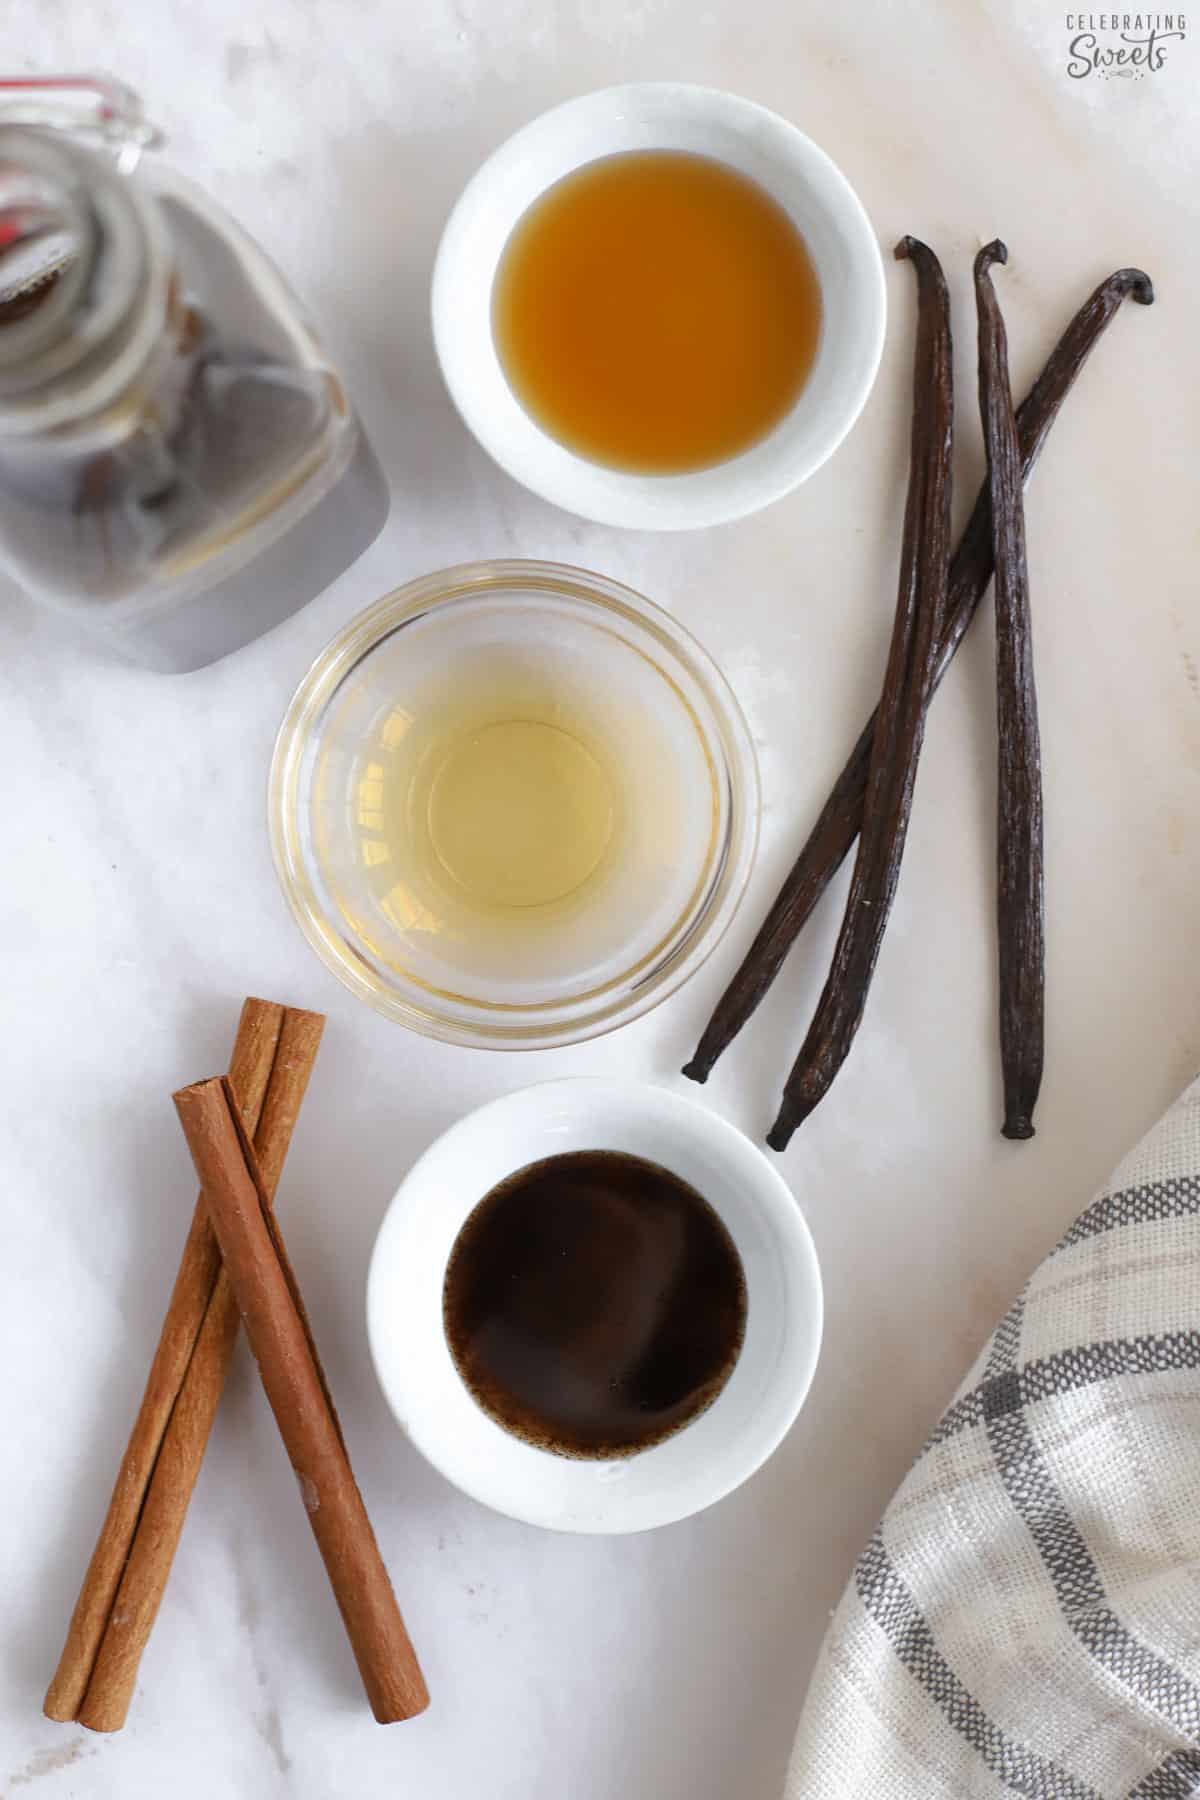 Vanilla beans, cinnamon sticks, and extracts in small bowls.